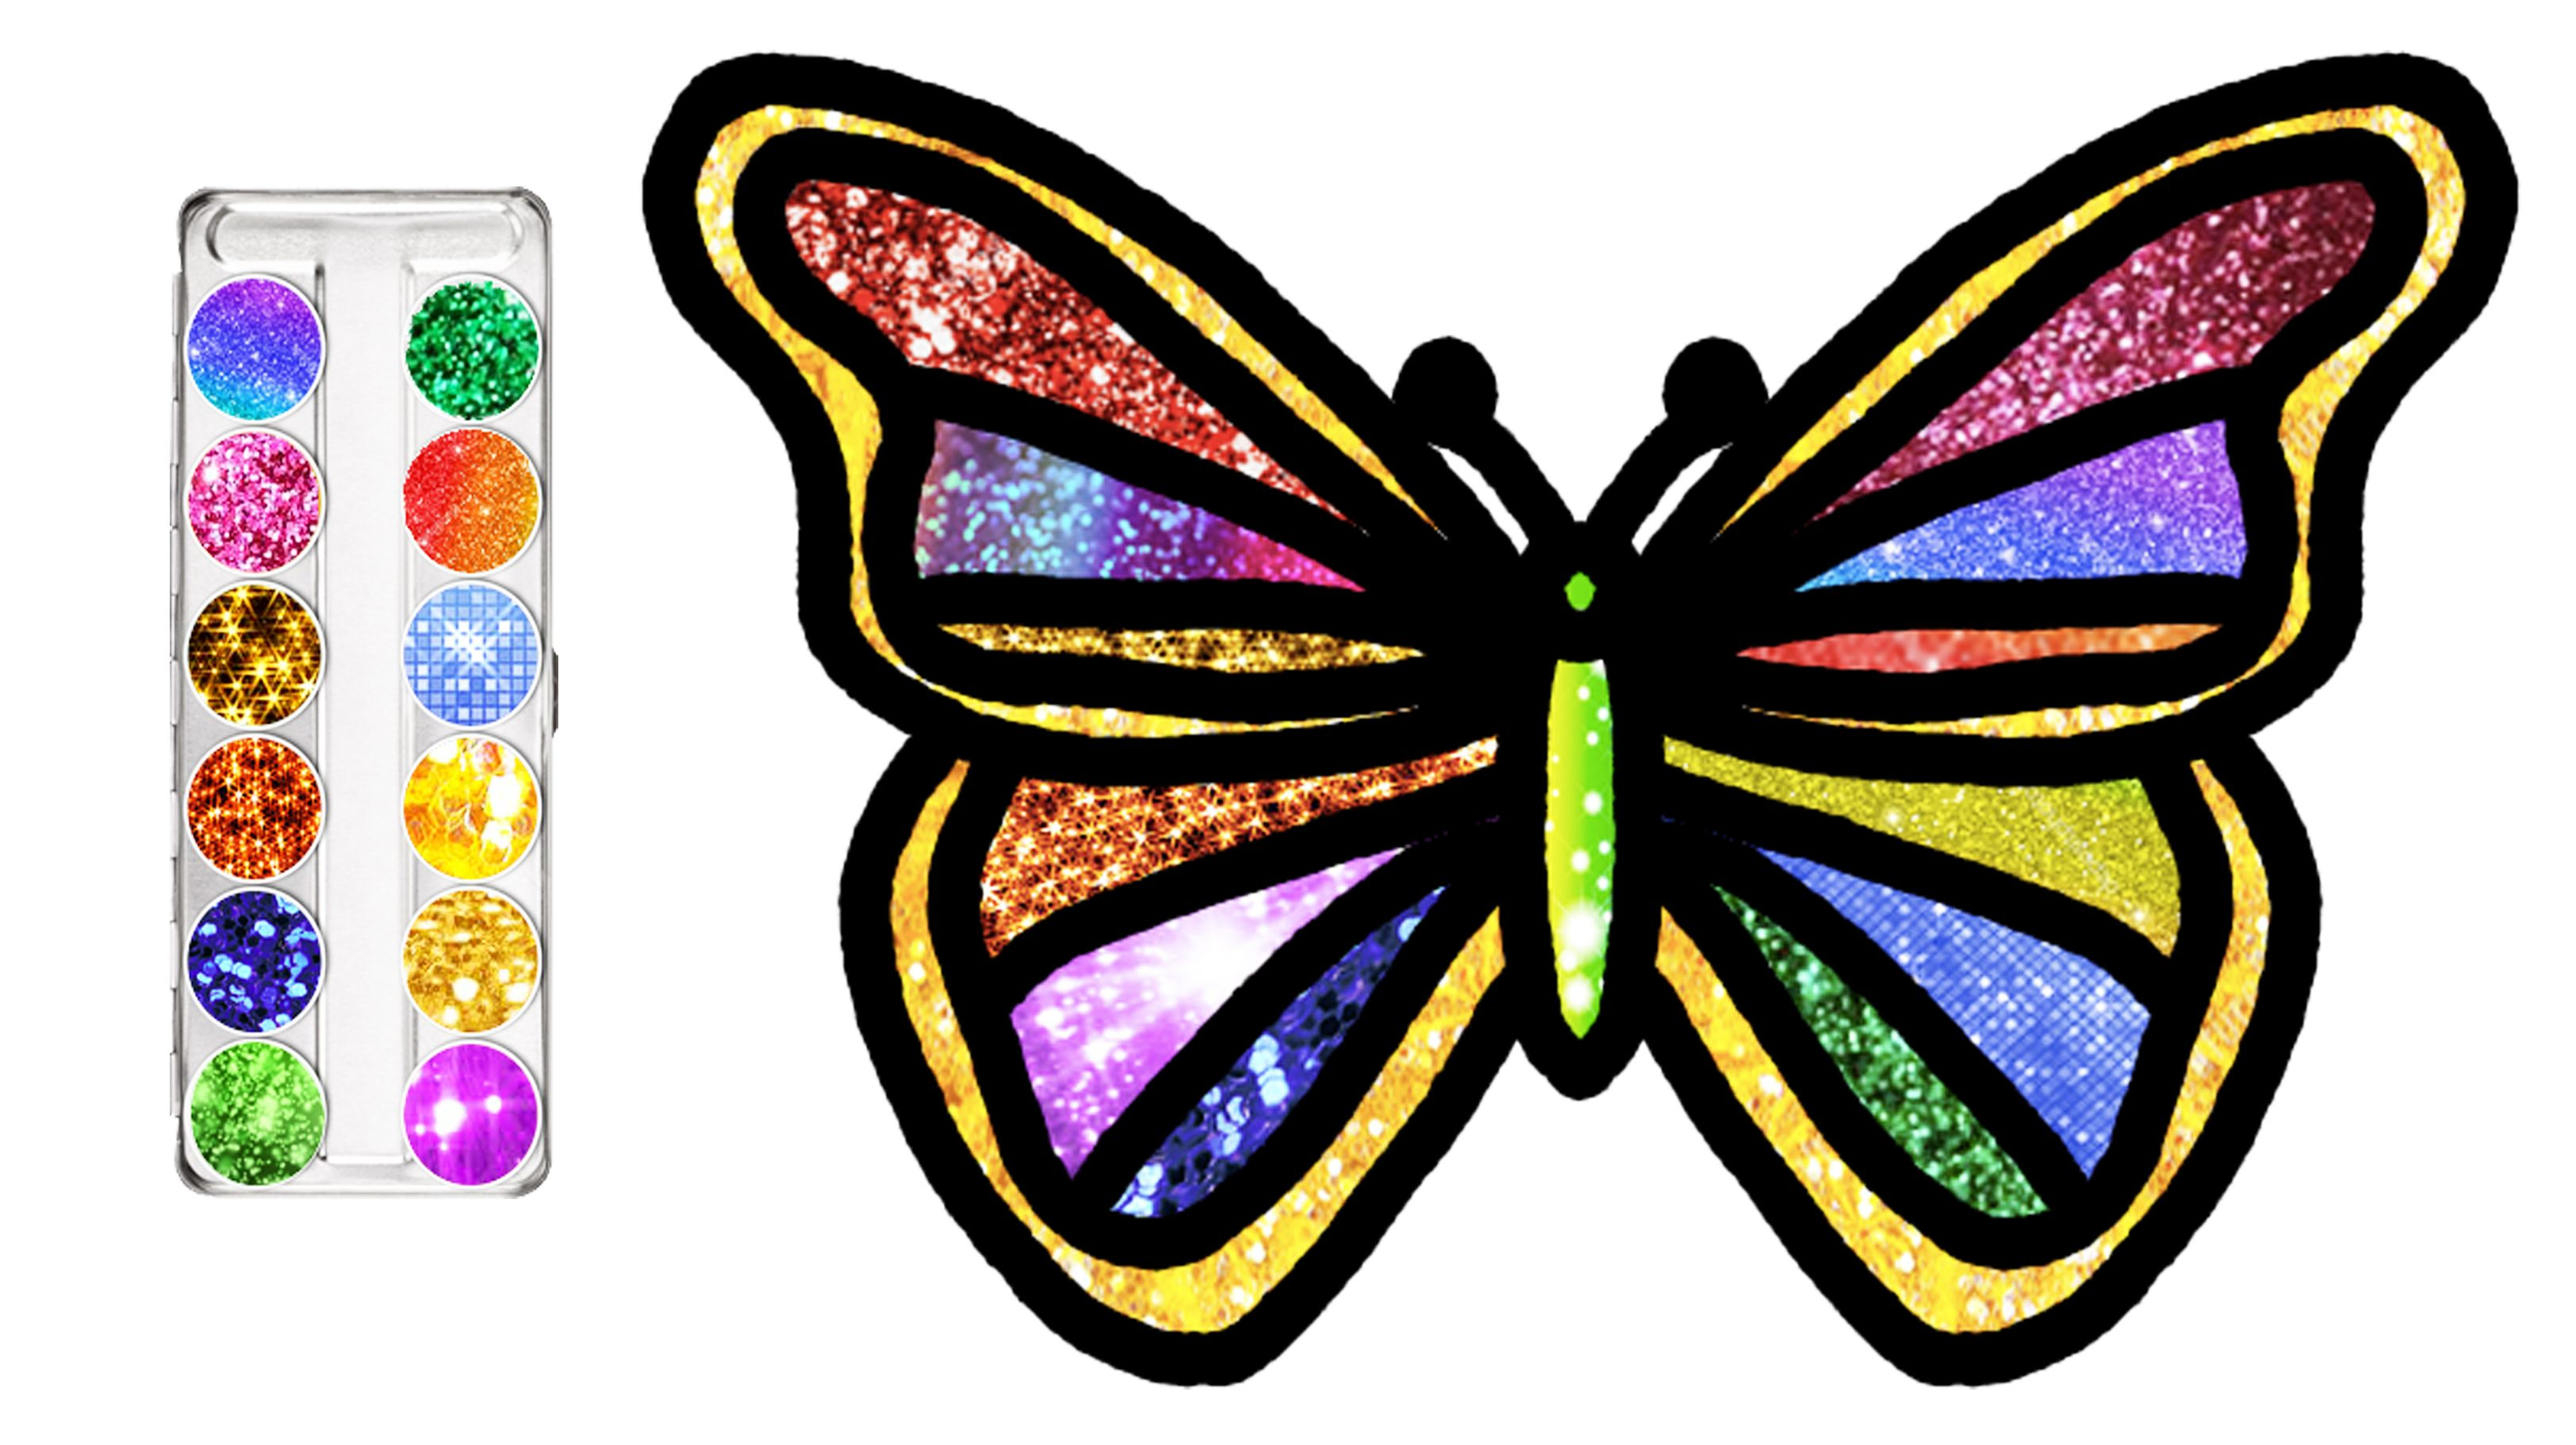 How To Draw Beautiful Glitter Butterfly Fun Easy Coloring Videos Coloring Pages Book For Kids Art Journal Therapy Easy Drawings For Beginners Fun Easy